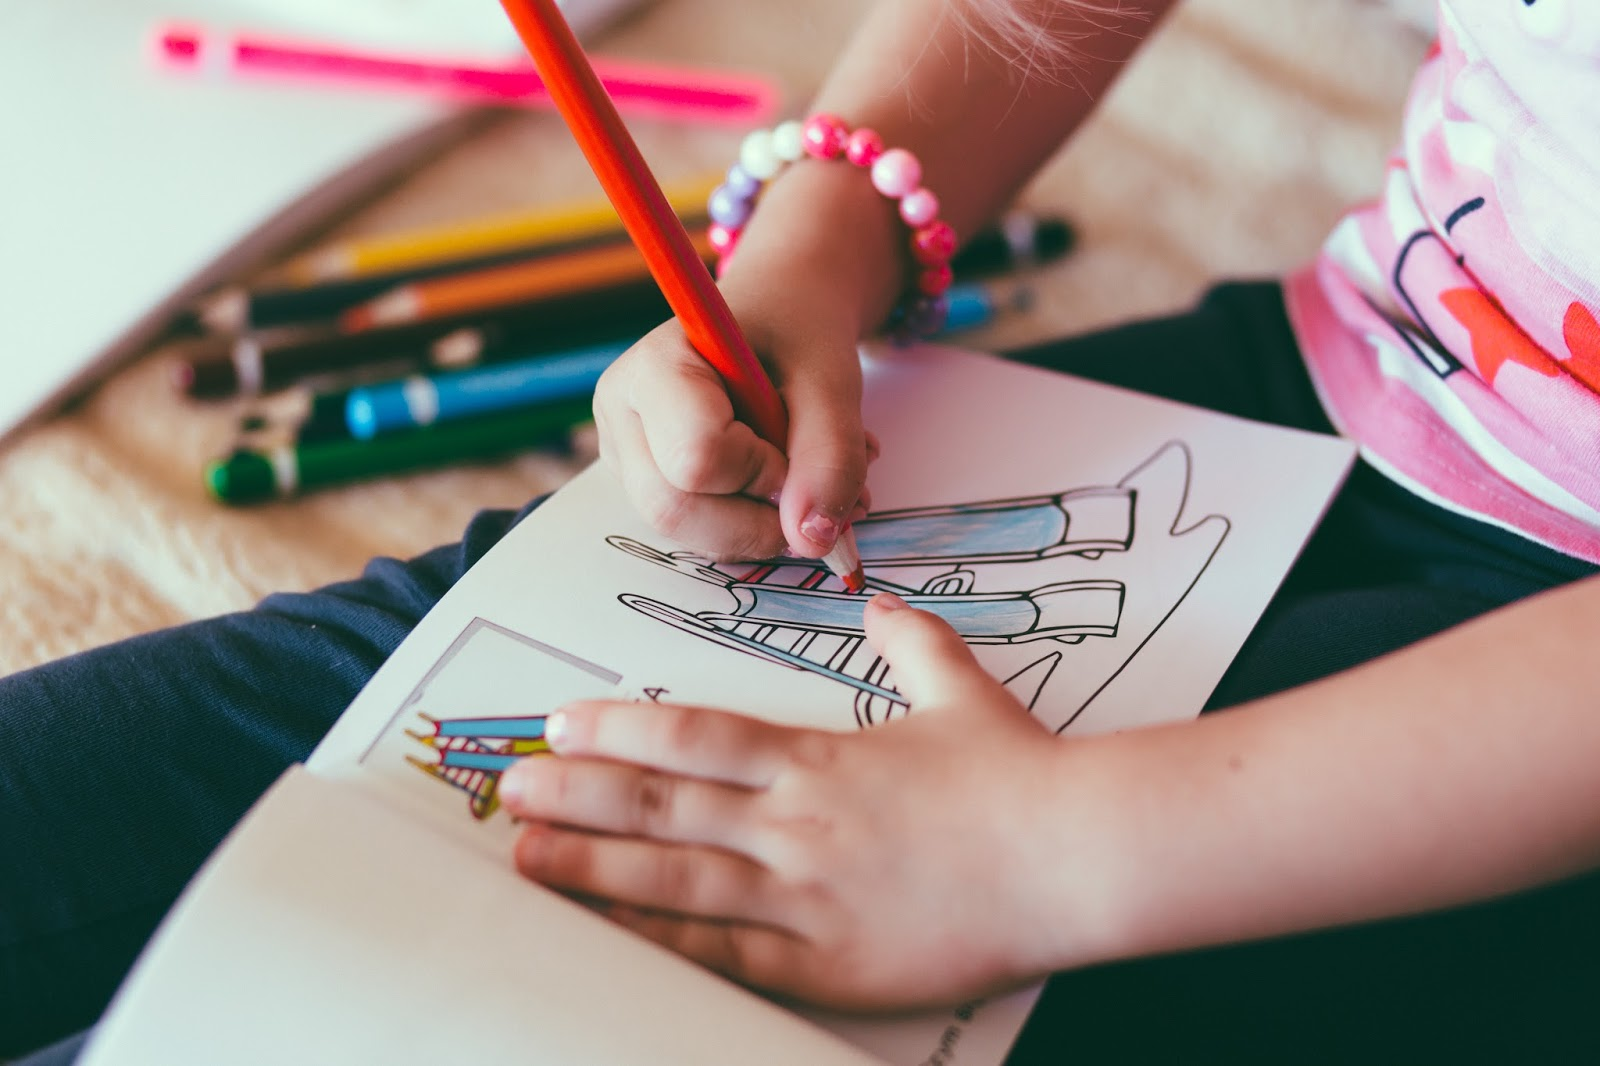 3 Things To Consider With Your Child's Education